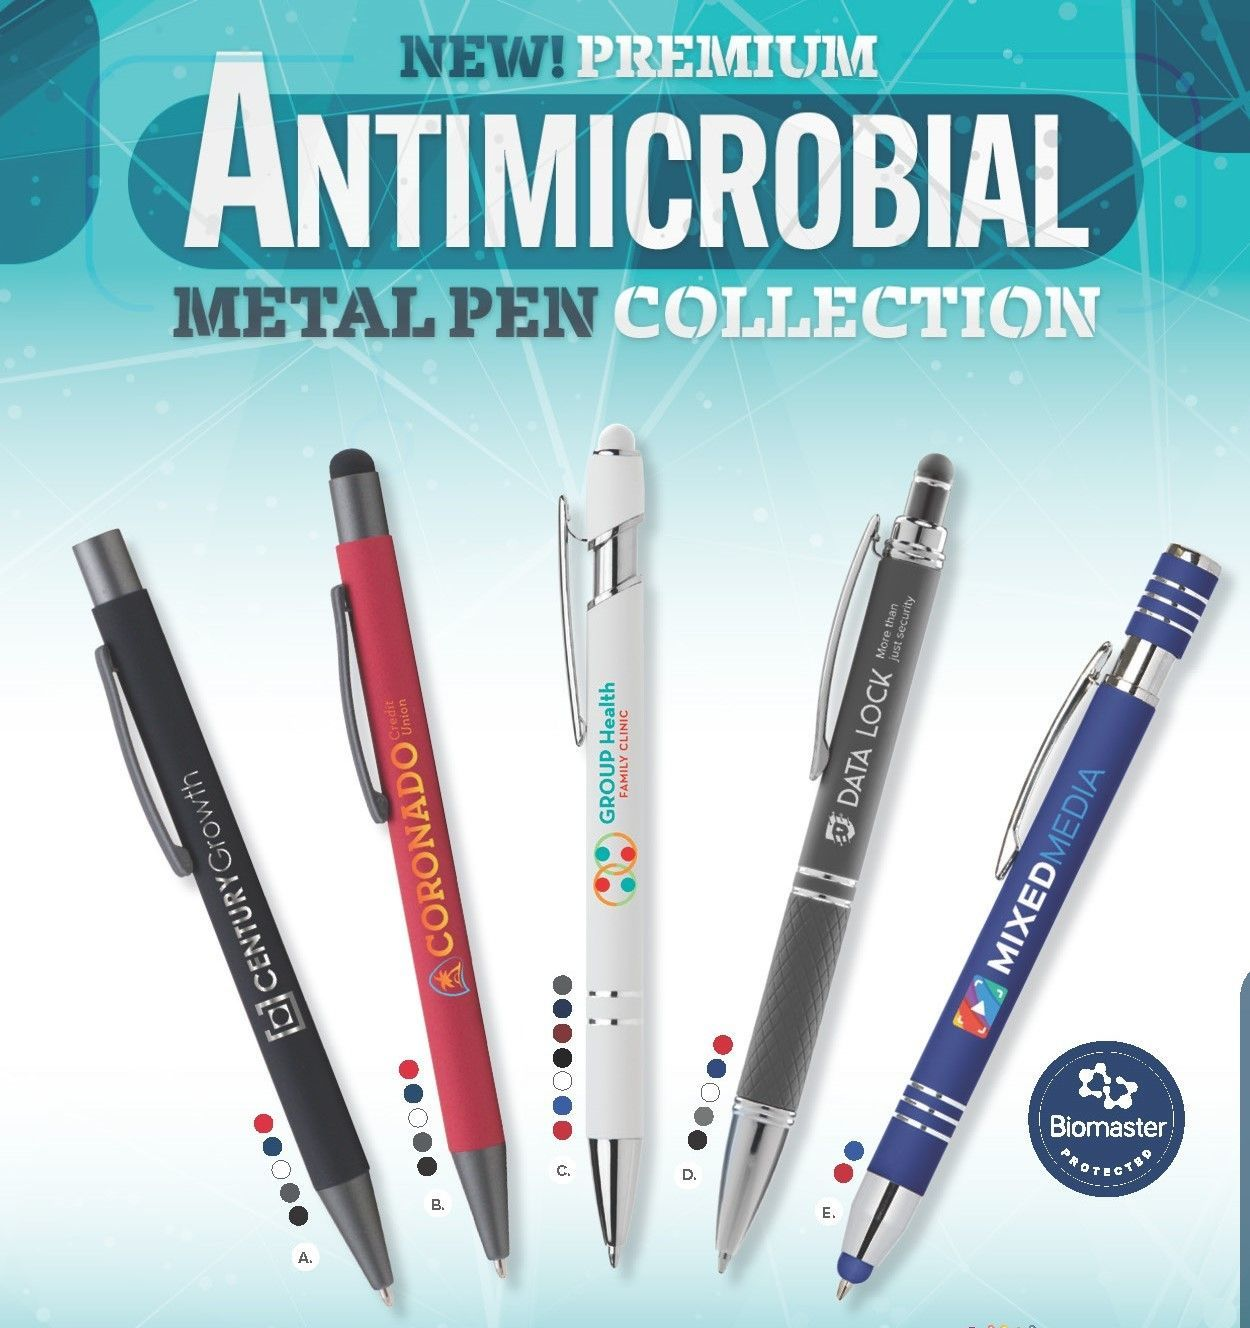 Antimicrobial Pens